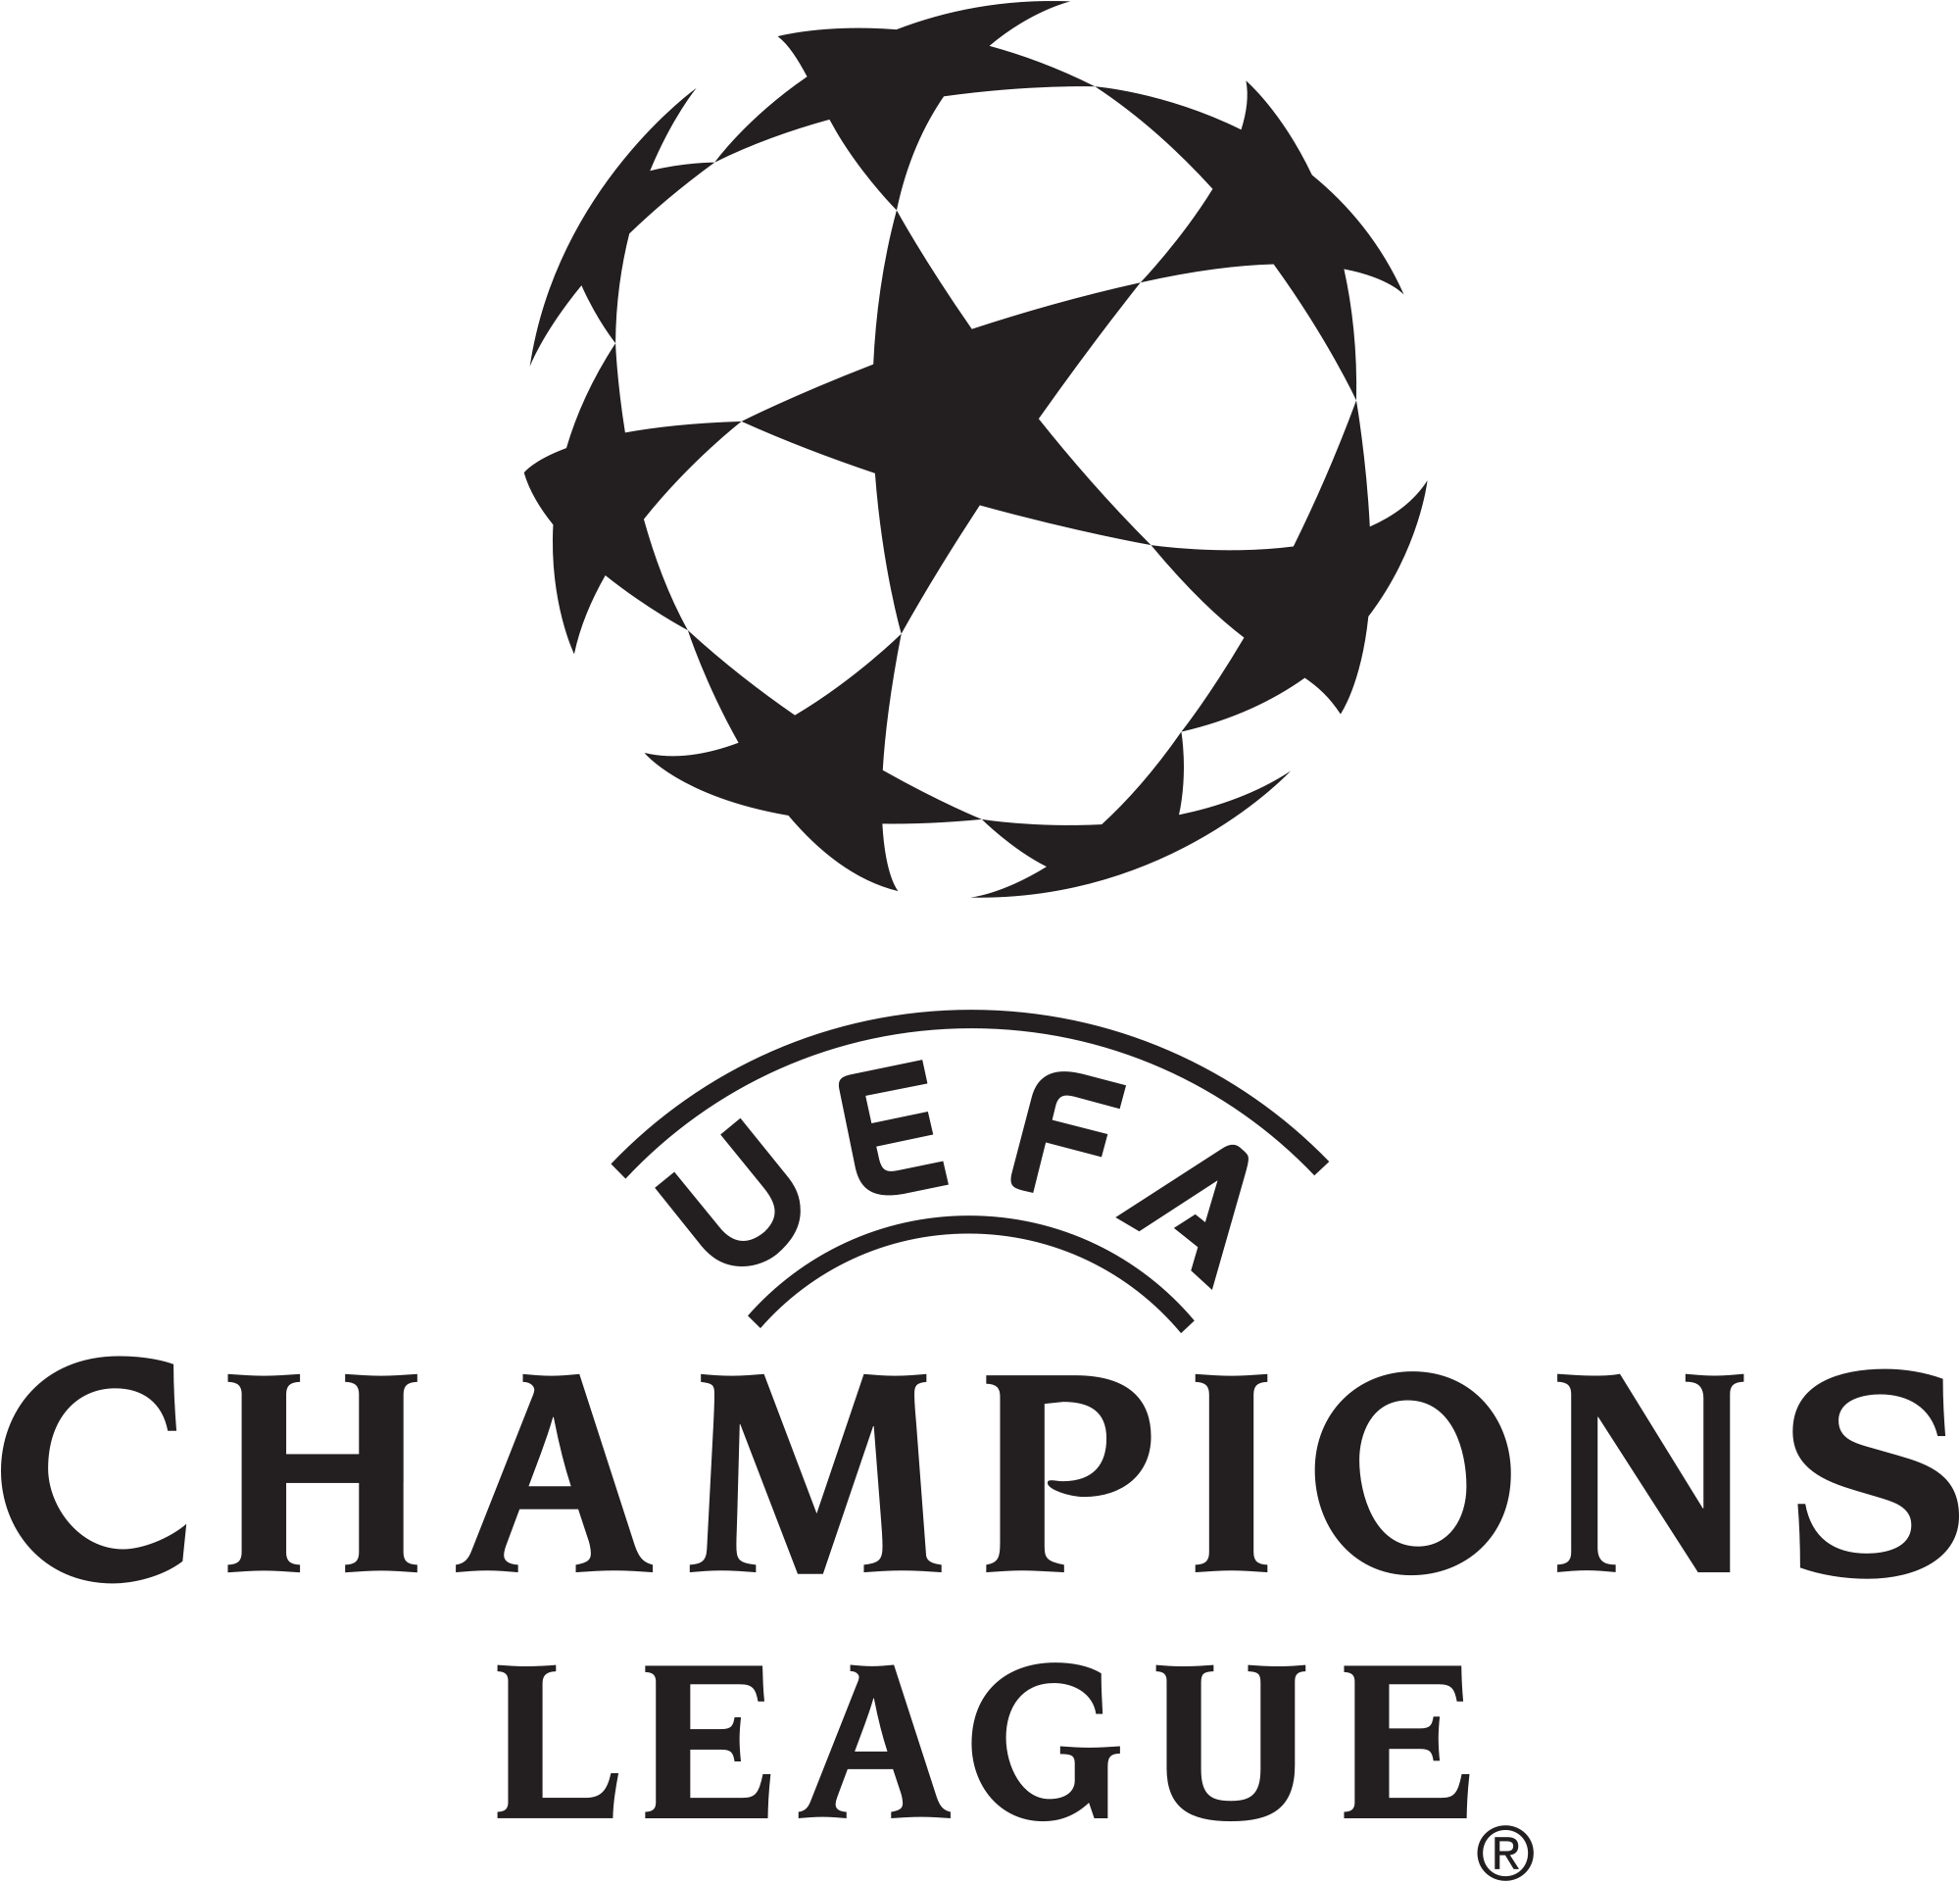 Uefa Champions League Logo Wallpaper High Definition Logo Bayer Leverkusen Borussia Monchengladbach Uefa Champions League